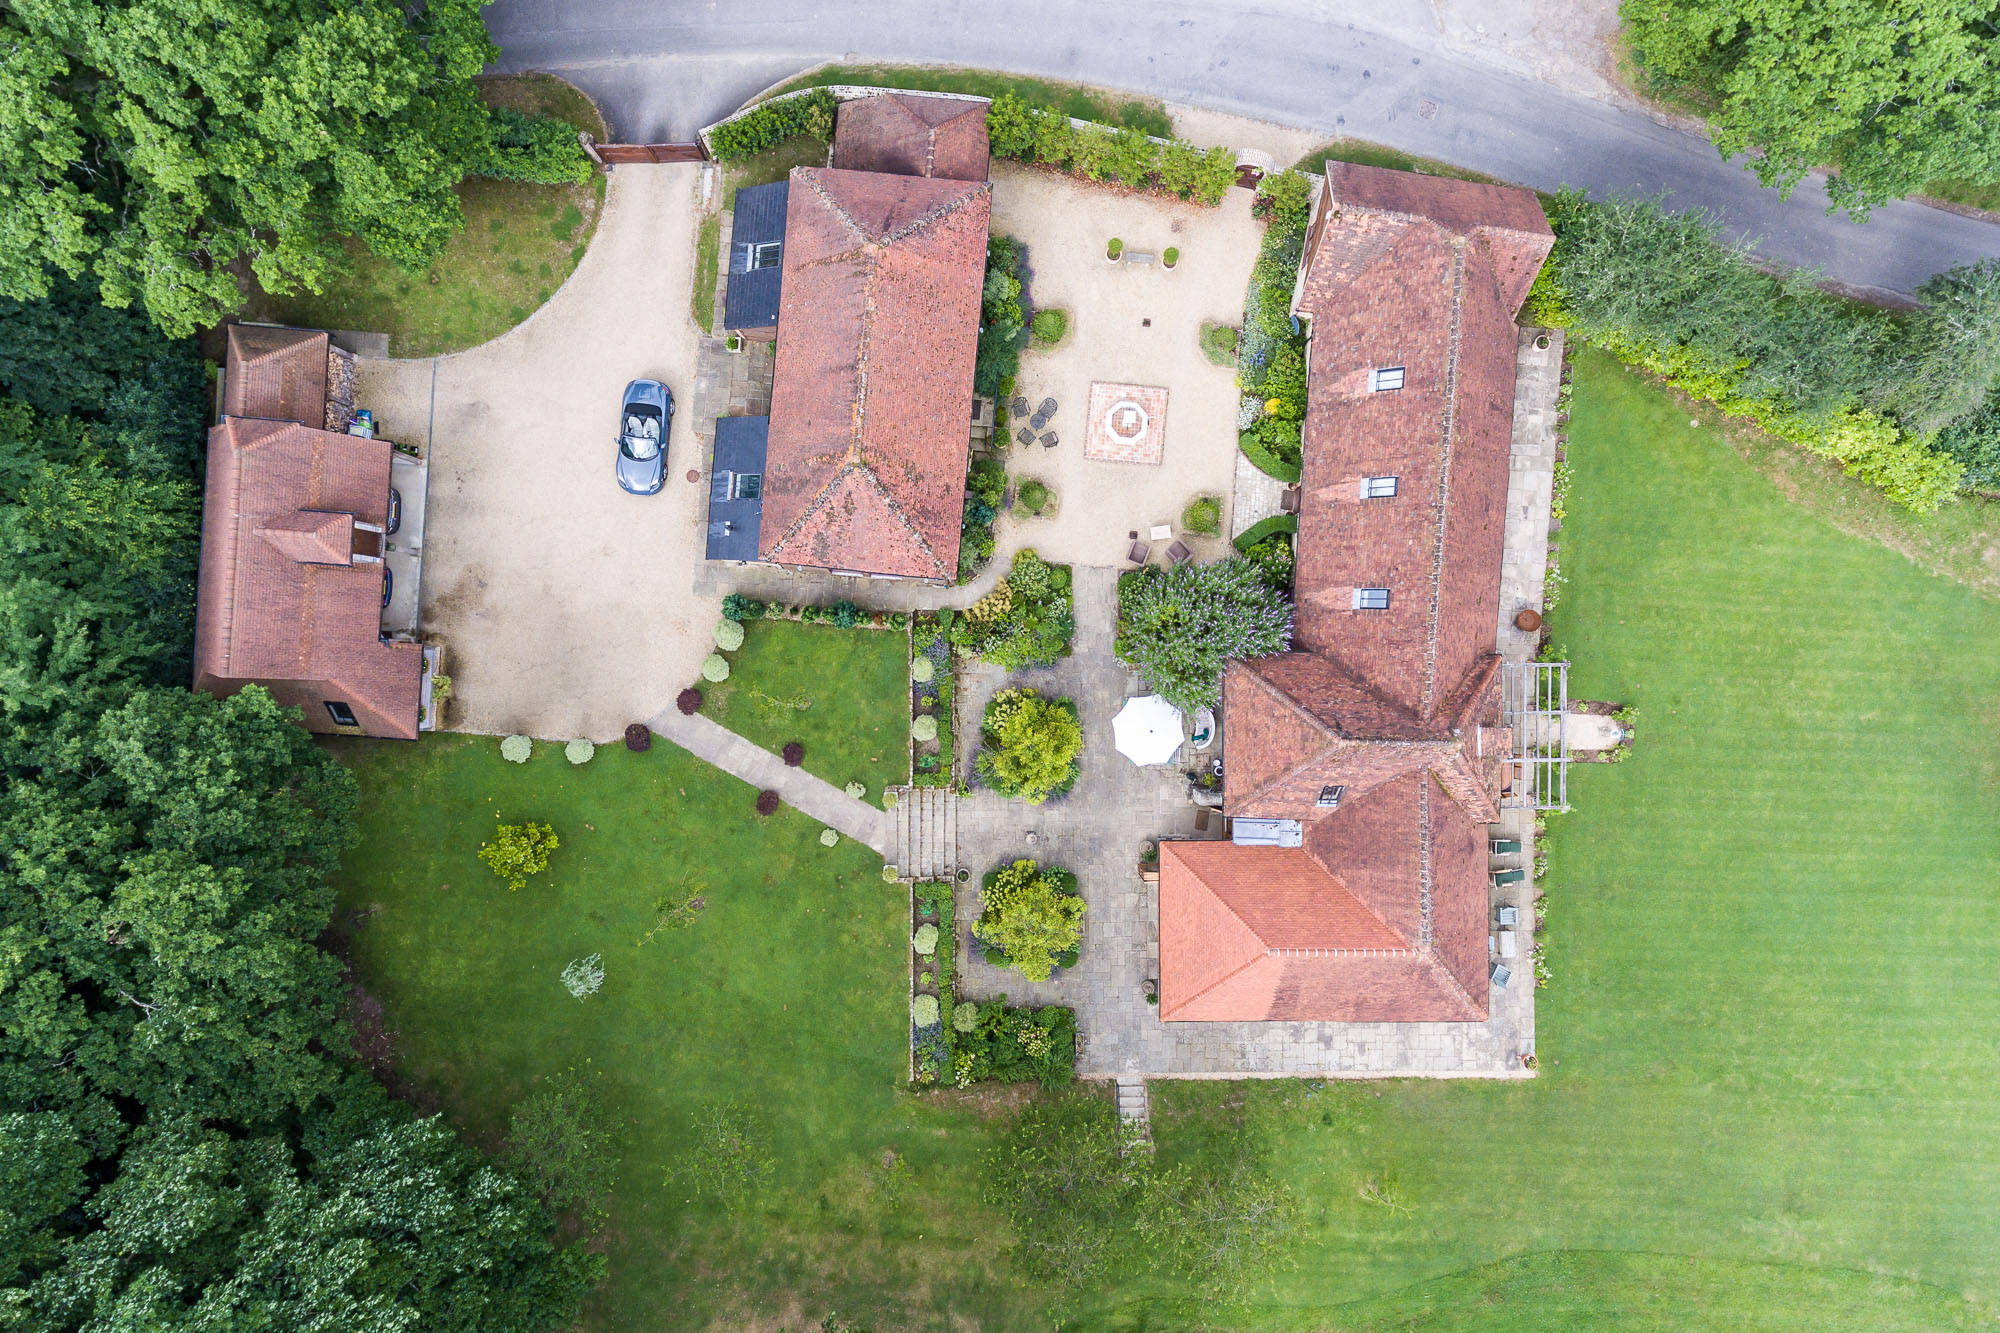 jonathan bond aerial photographer, overhead view of detached houses using drone